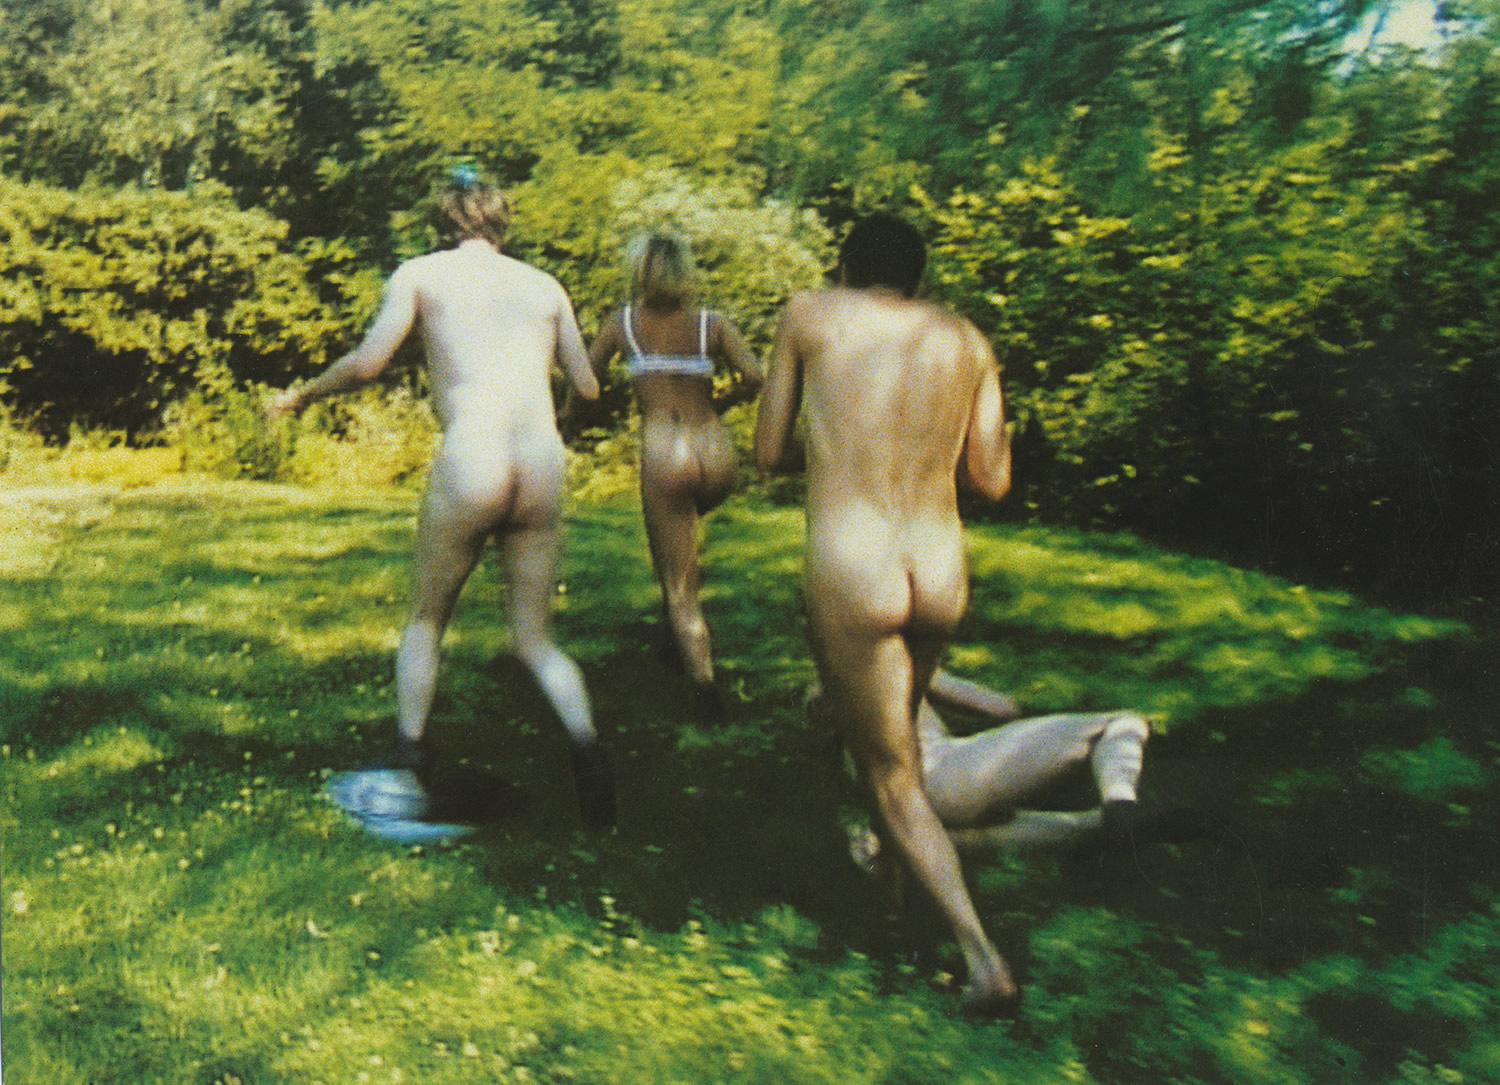 Erotic Art House Films, The Idiots - running nude